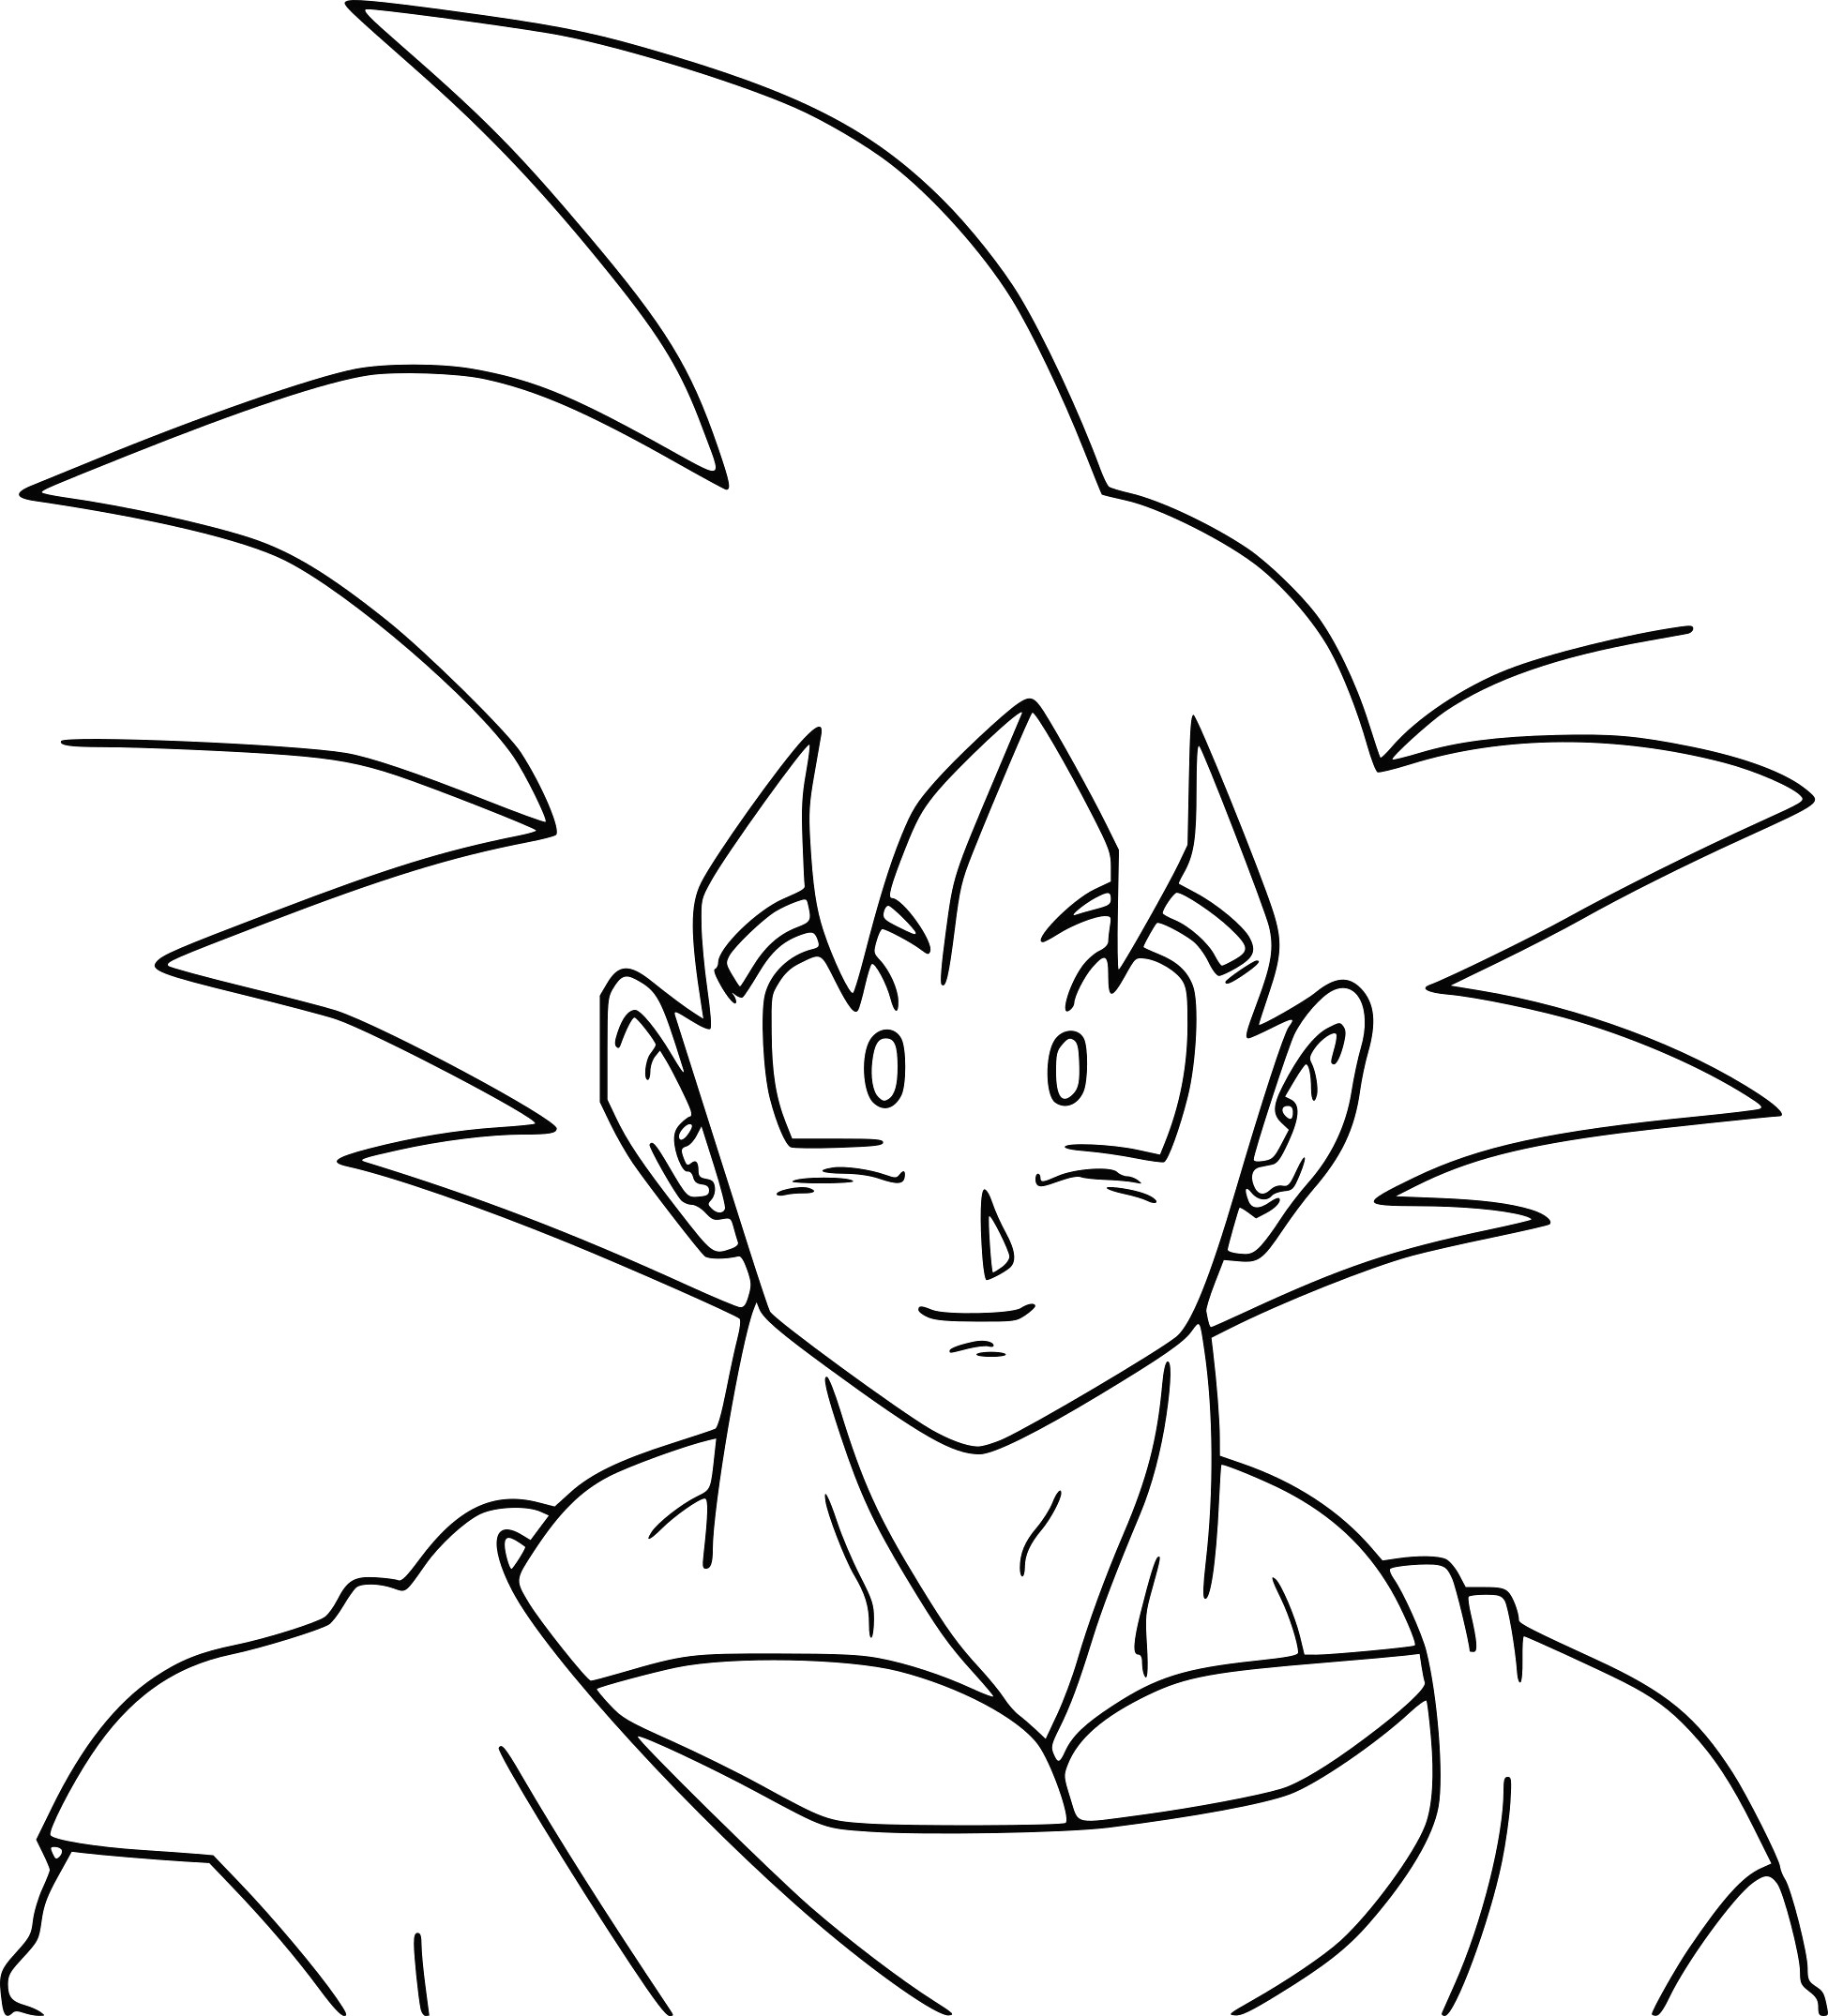 Facile Dragon Ball Broly Super Sayian Legendaire Coloriage serapportantà Coloriage Dragon Ball Z Sangoku